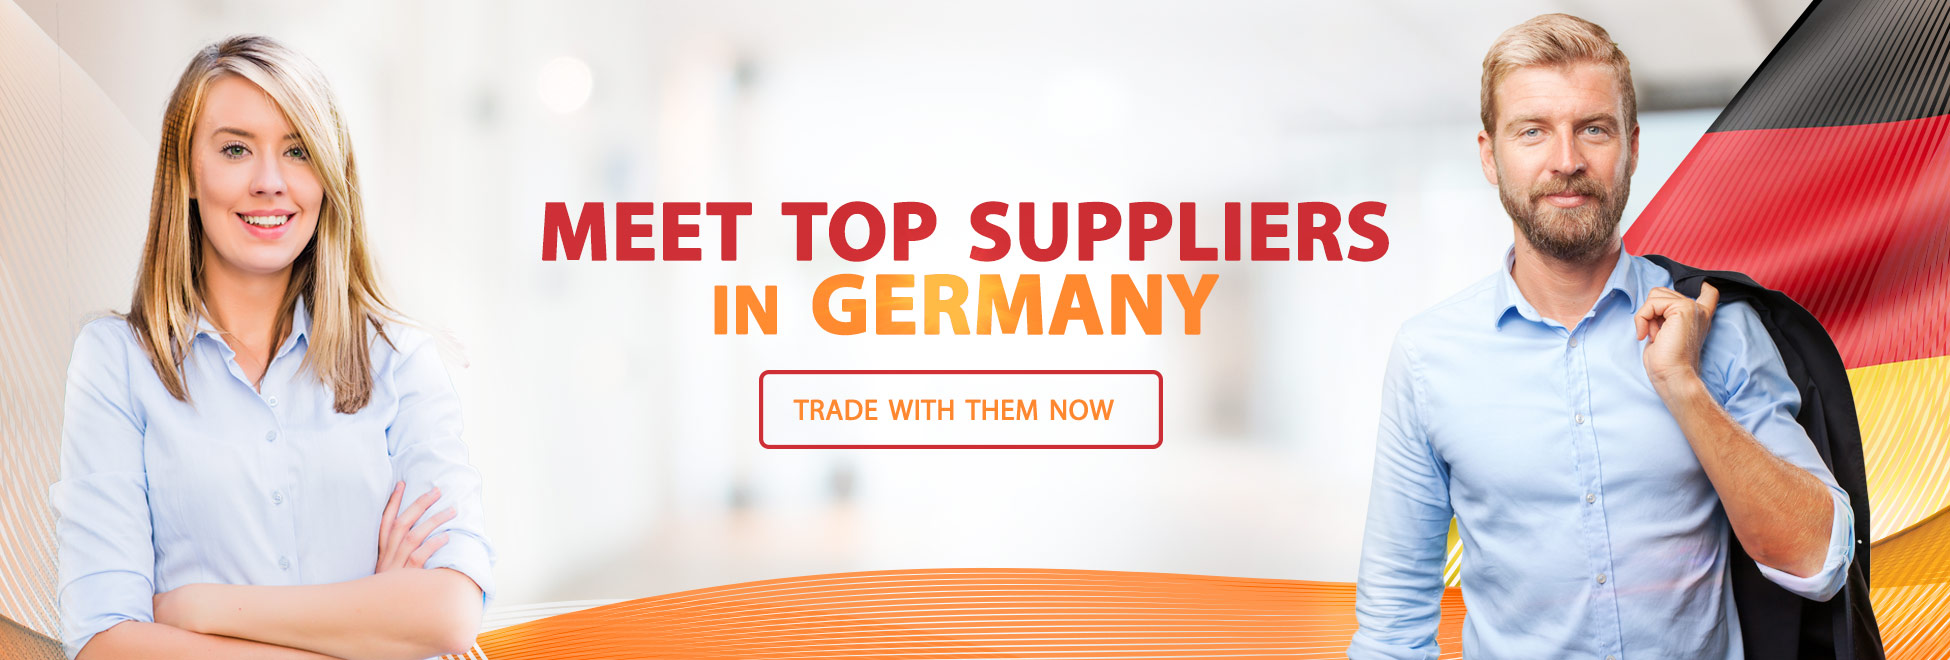 Meet Top Suppliers in Germany